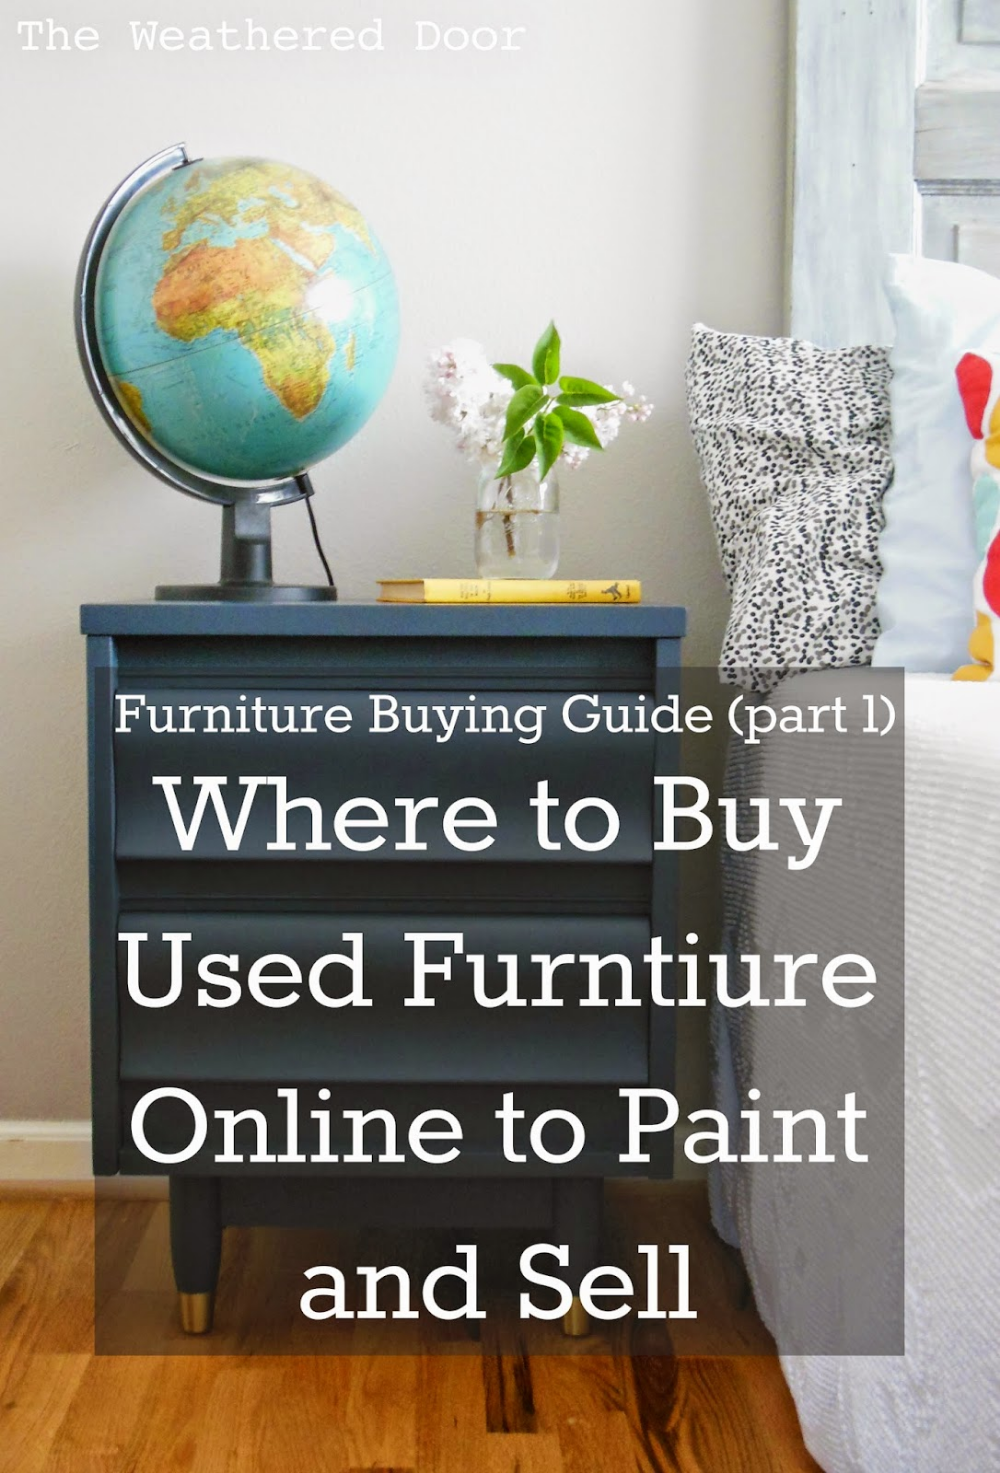 Furniture Buying Guide Where To Look For And Buy Used Furniture Pieces Online To Paint And Sell Part 1 The Weathered Door Buy Used Furniture Selling Furniture Flipping Furniture